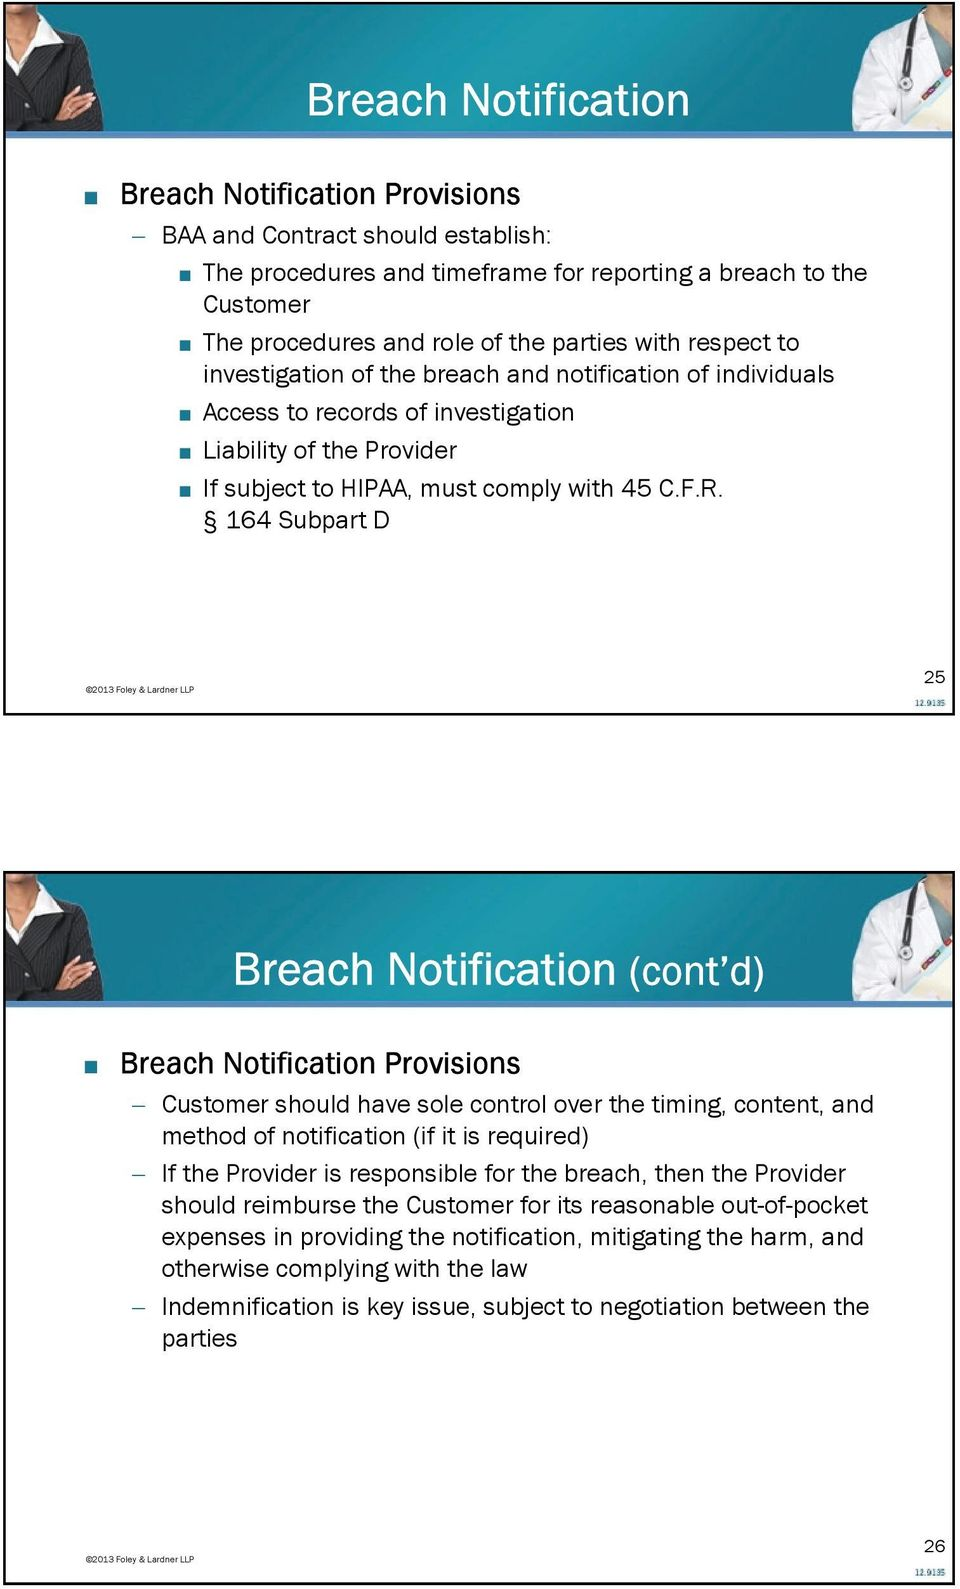 164 Subpart D 25 Breach Notification (cont d) Breach Notification Provisions Customer should have sole control over the timing, content, and method of notification (if it is required) If the Provider